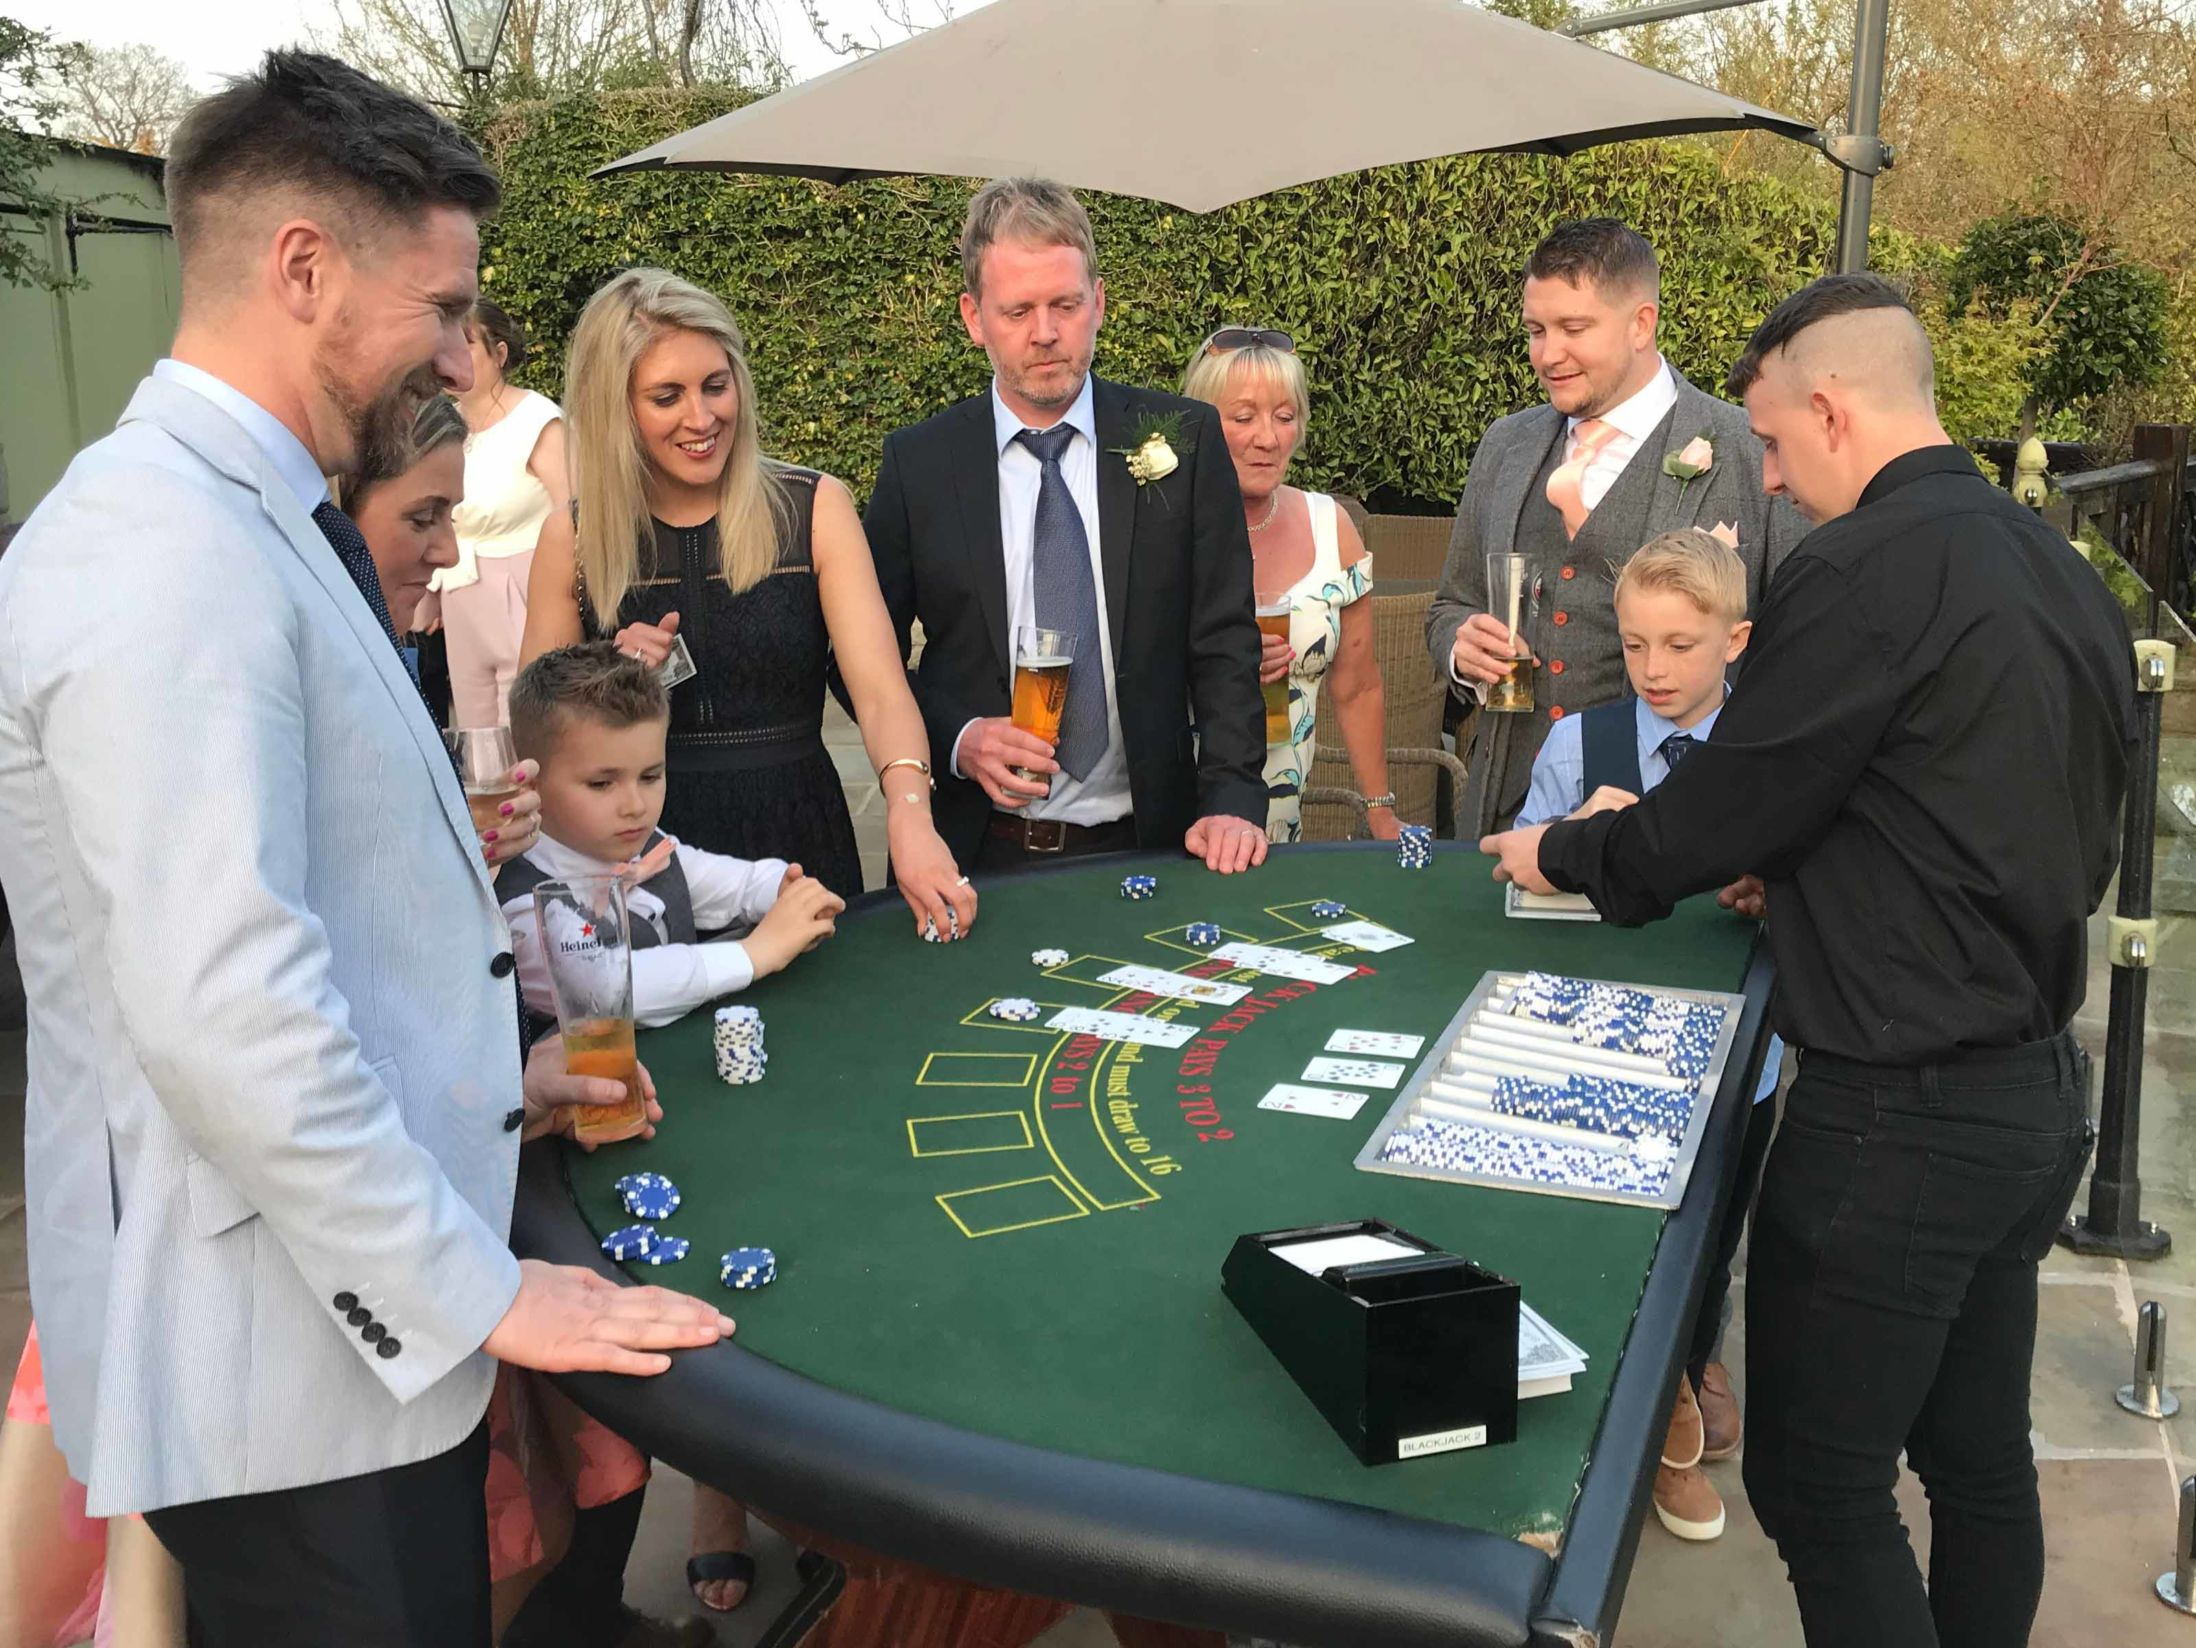 Christmas Party Ideas Perfect for In-Office - Casino Table Hire